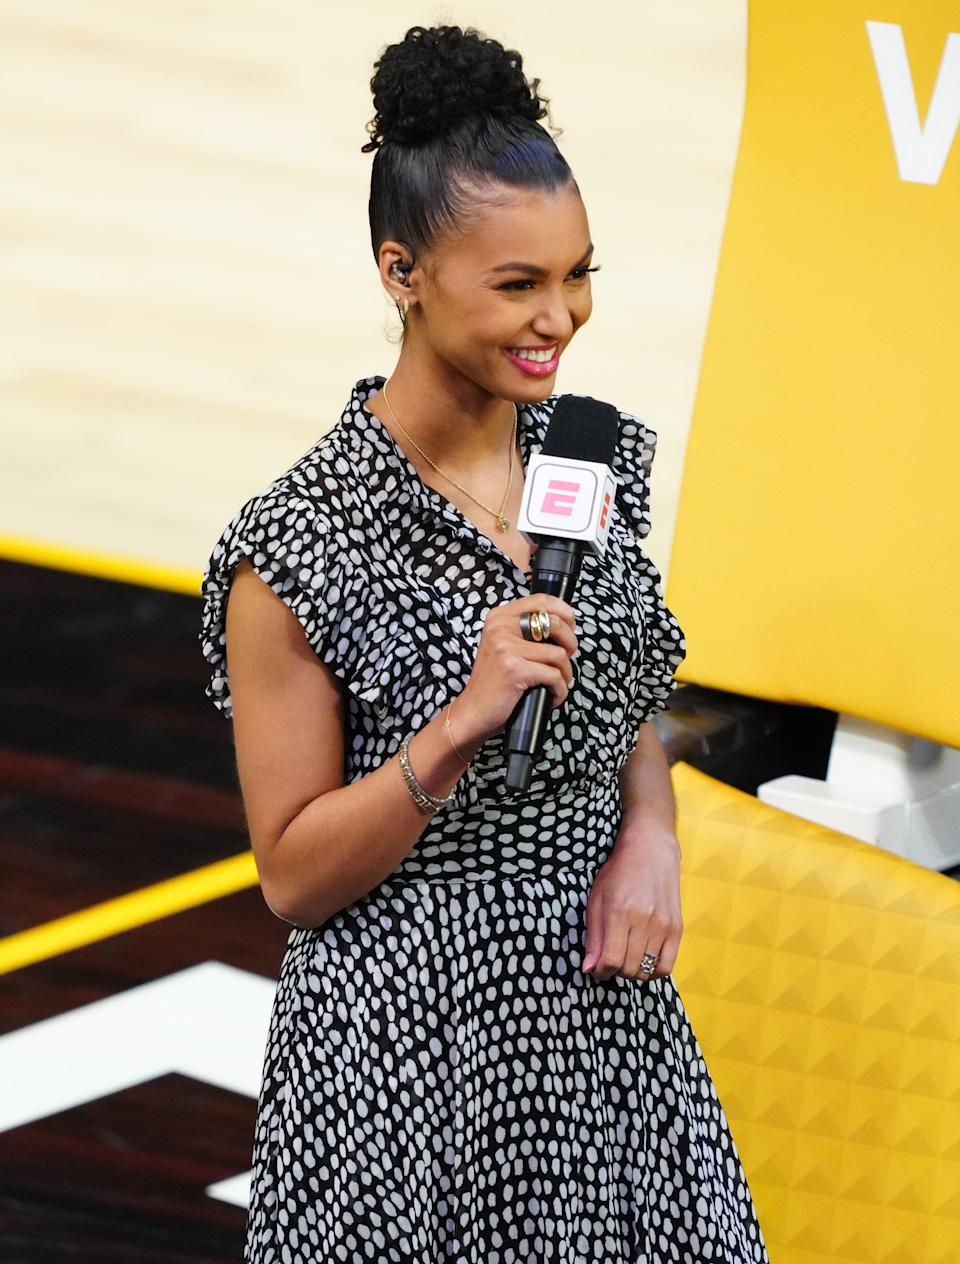 As part of an ongoing effort to overhaul its NBA coverage, Malika Andrews will become the new host of ESPN's new weekday NBA program.